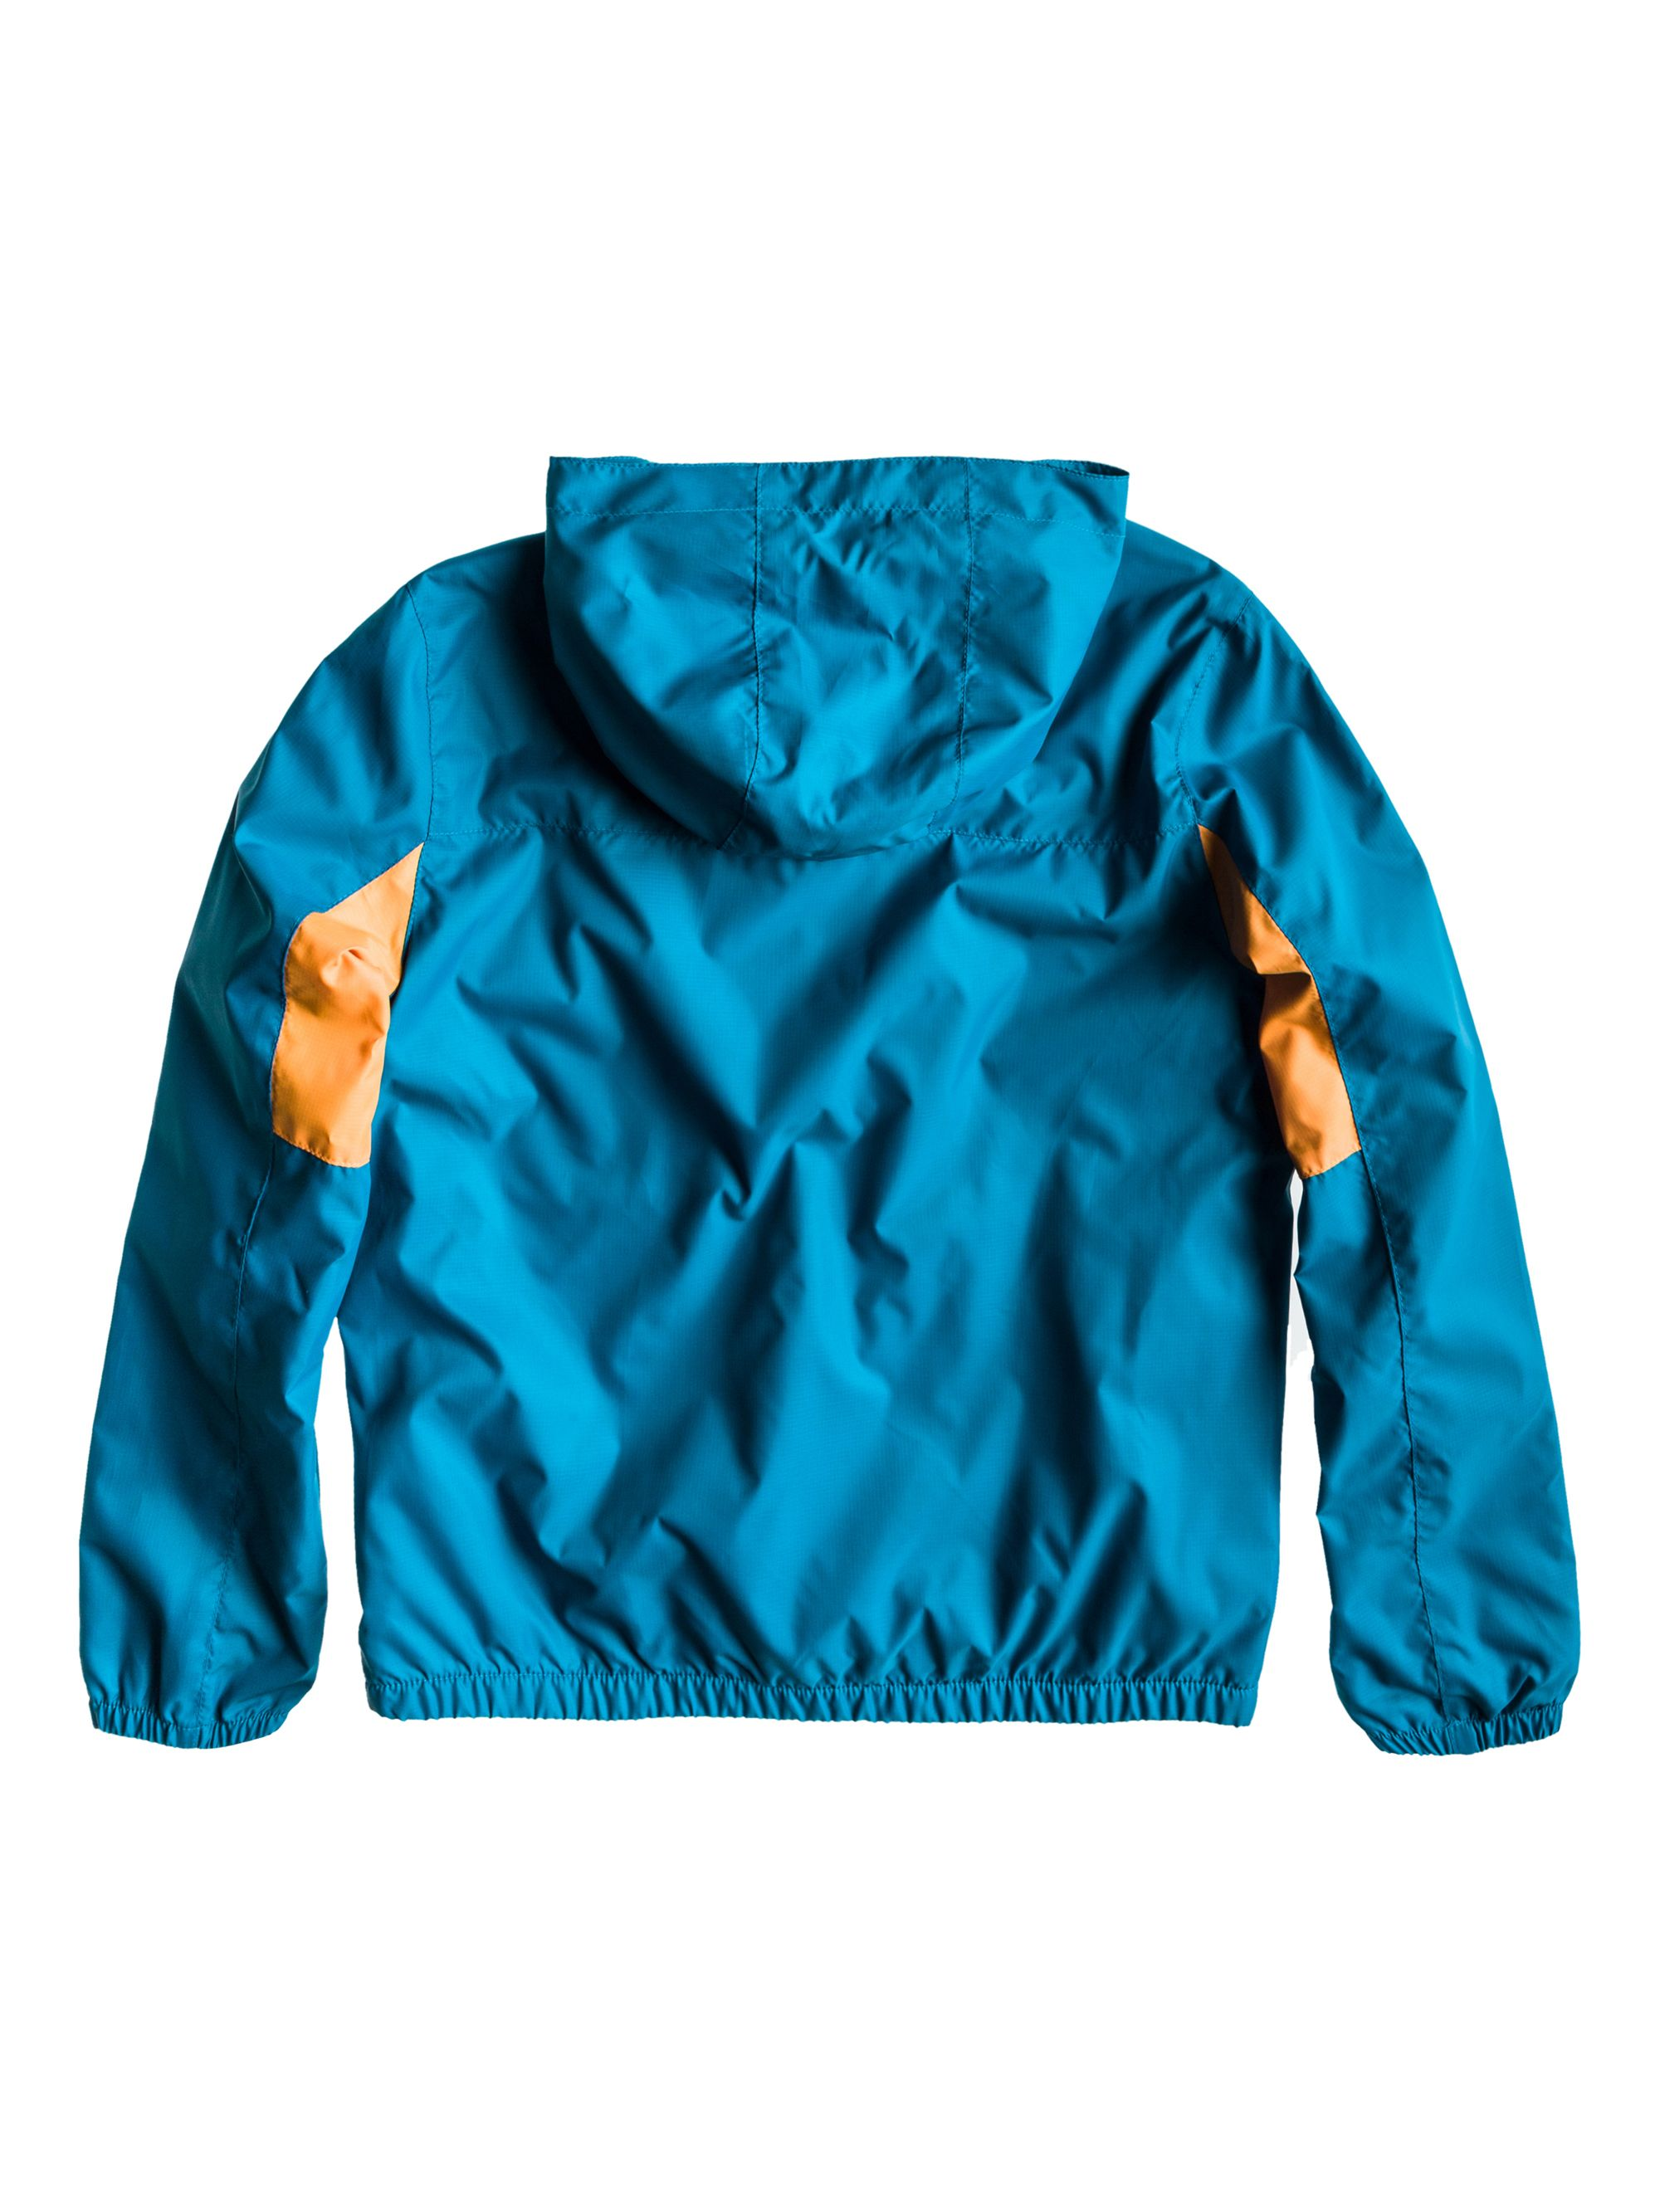 Boys byron windbreaker jacket